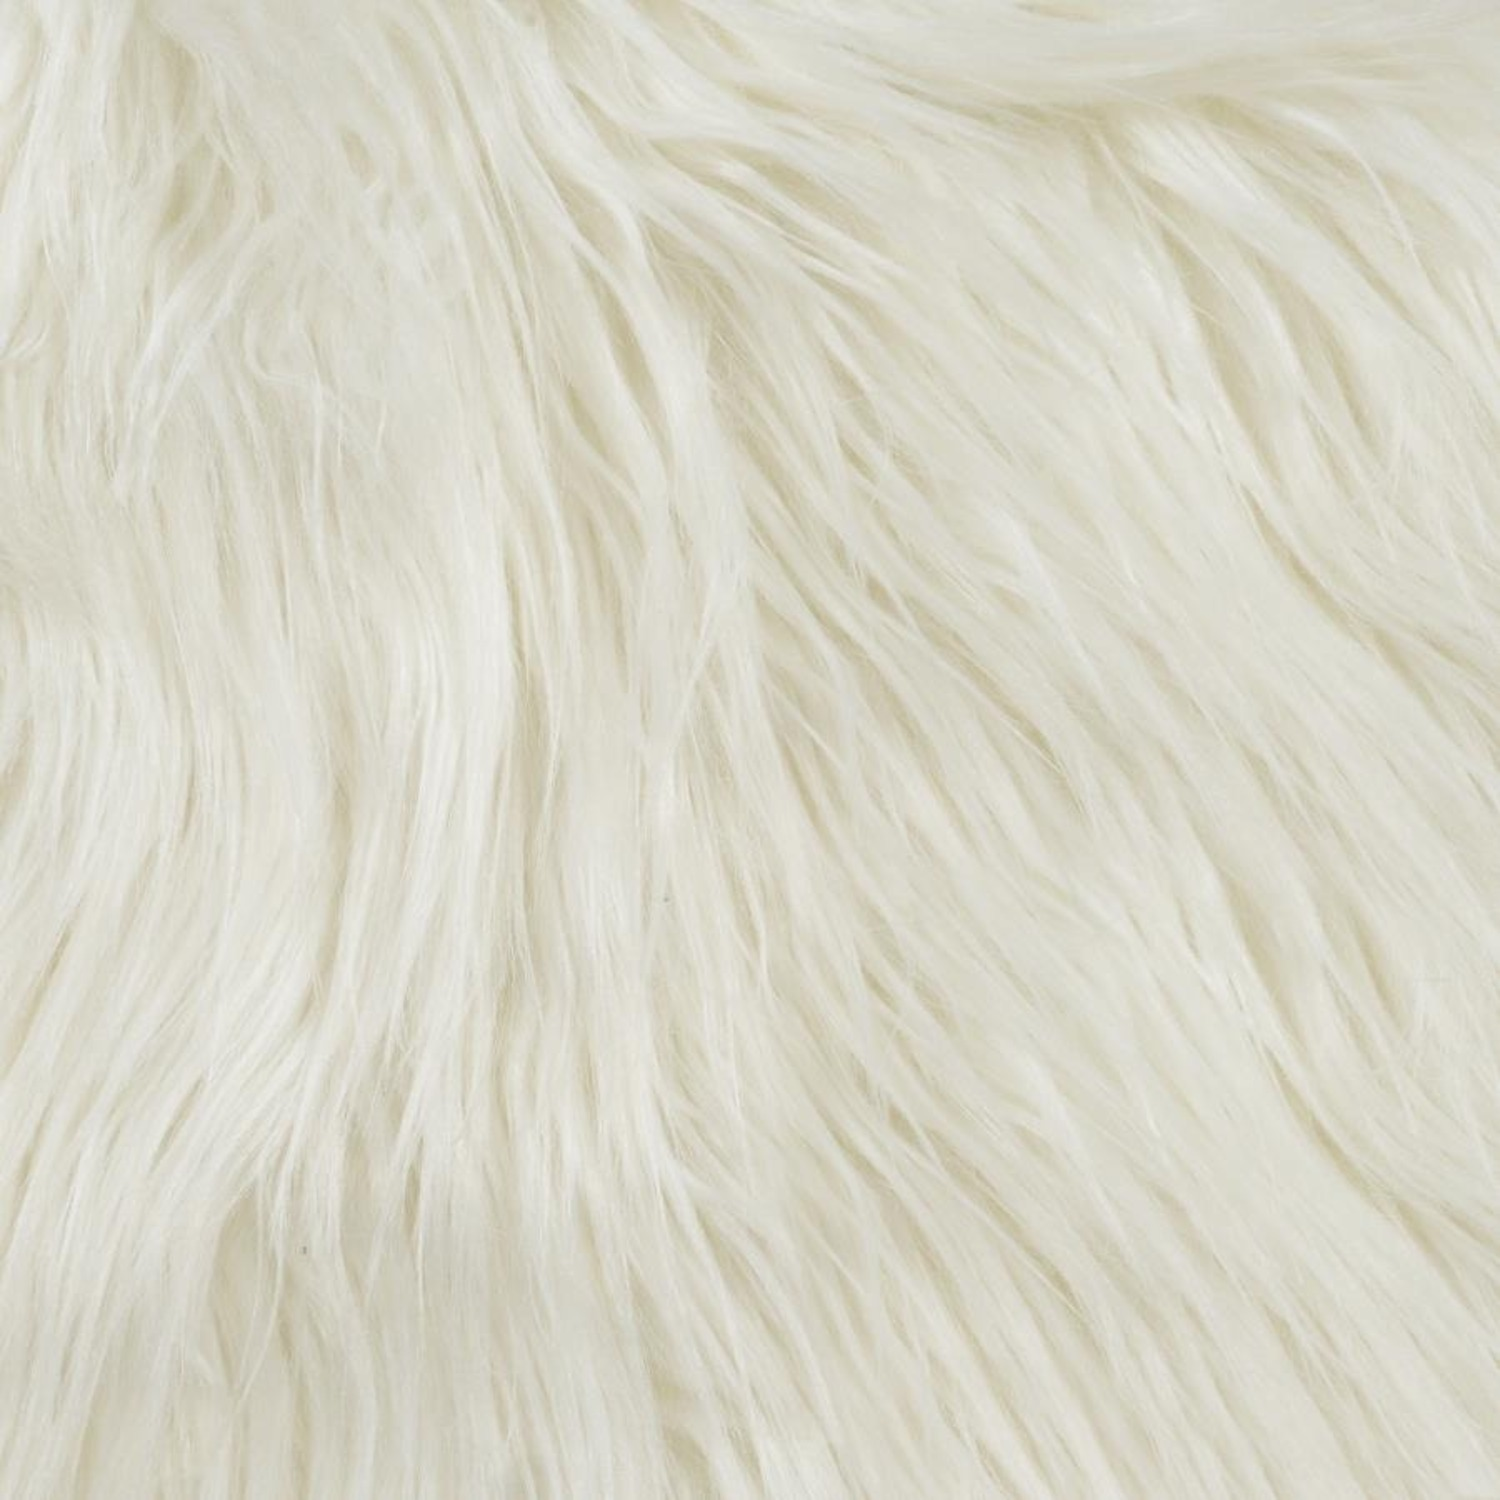 Accent Chair In Glamorous White Faux Sheepskin - image-3